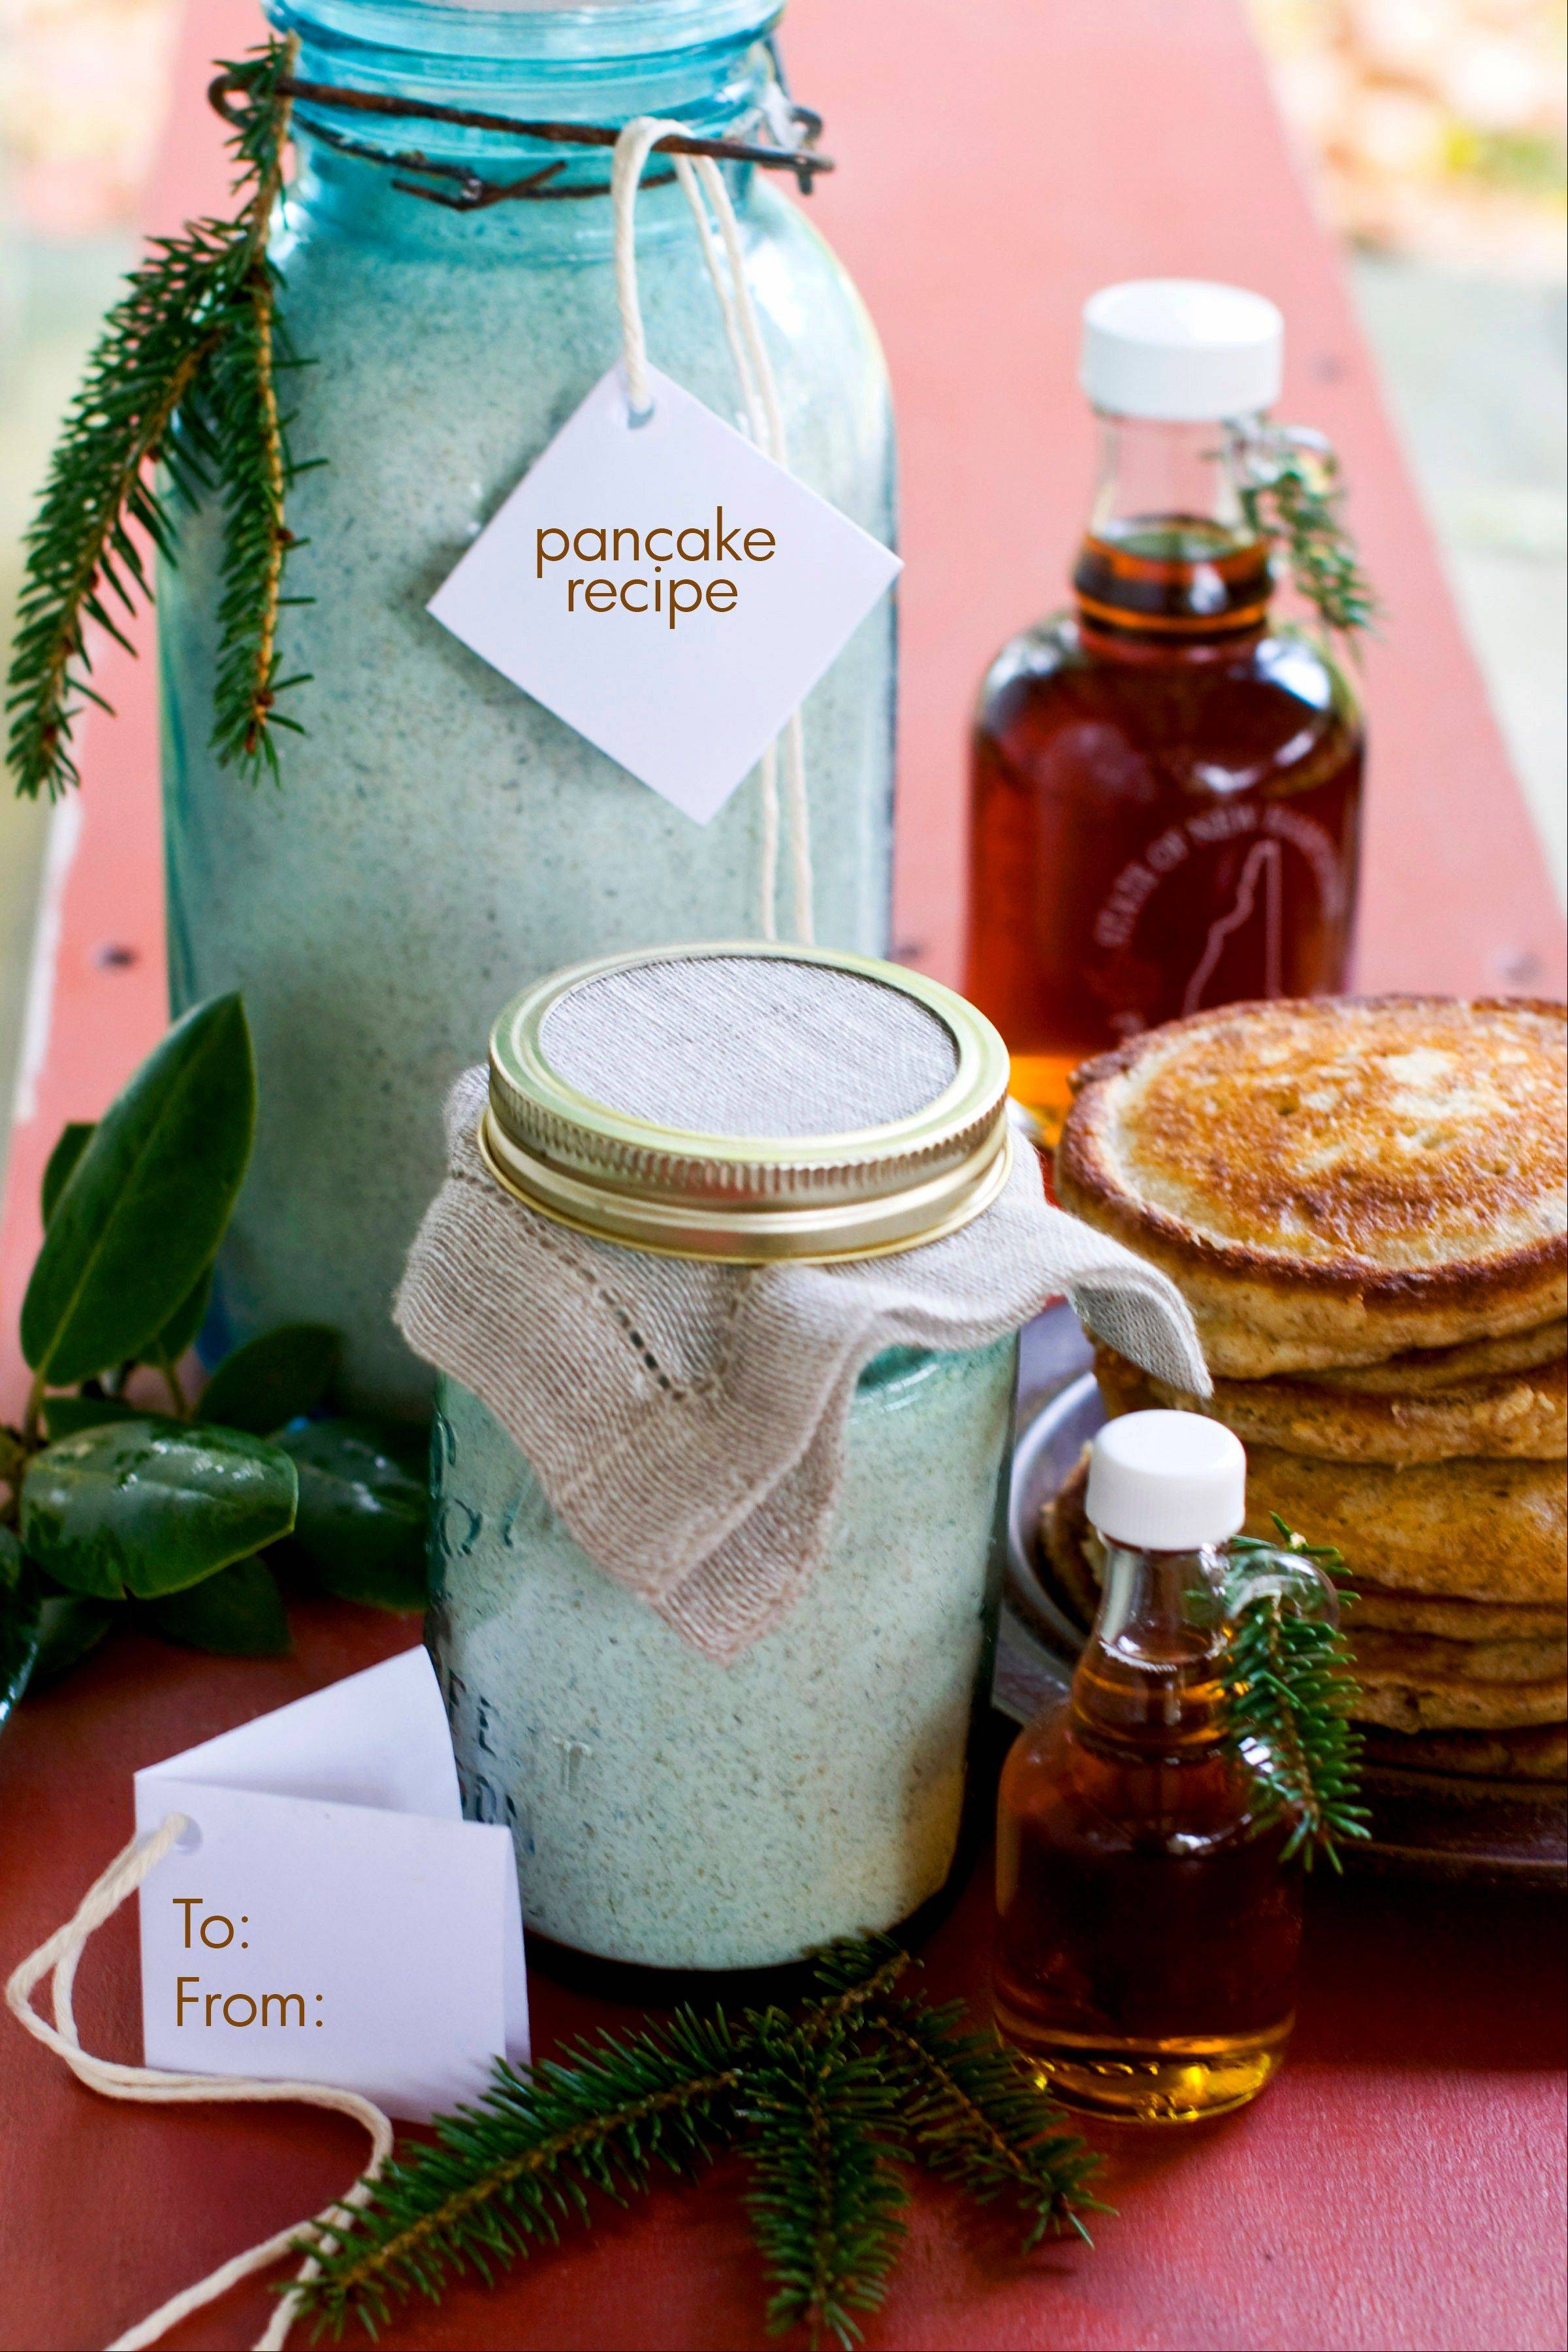 Make someone's holiday with healthy homemade pancake and waffle mix.